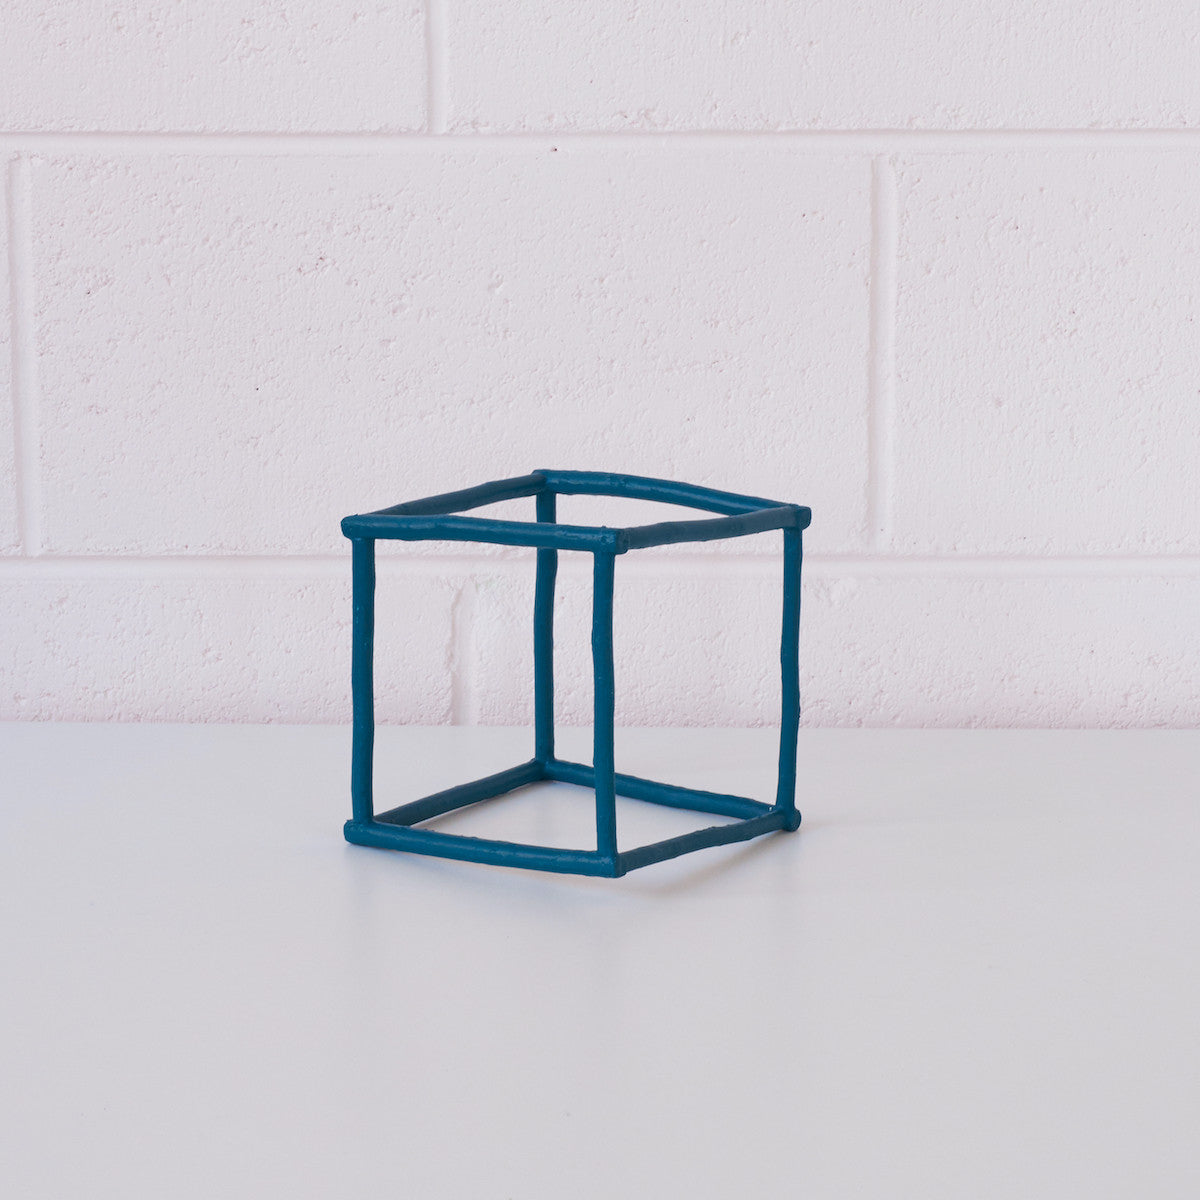 Twig Cube by Twiggargerie